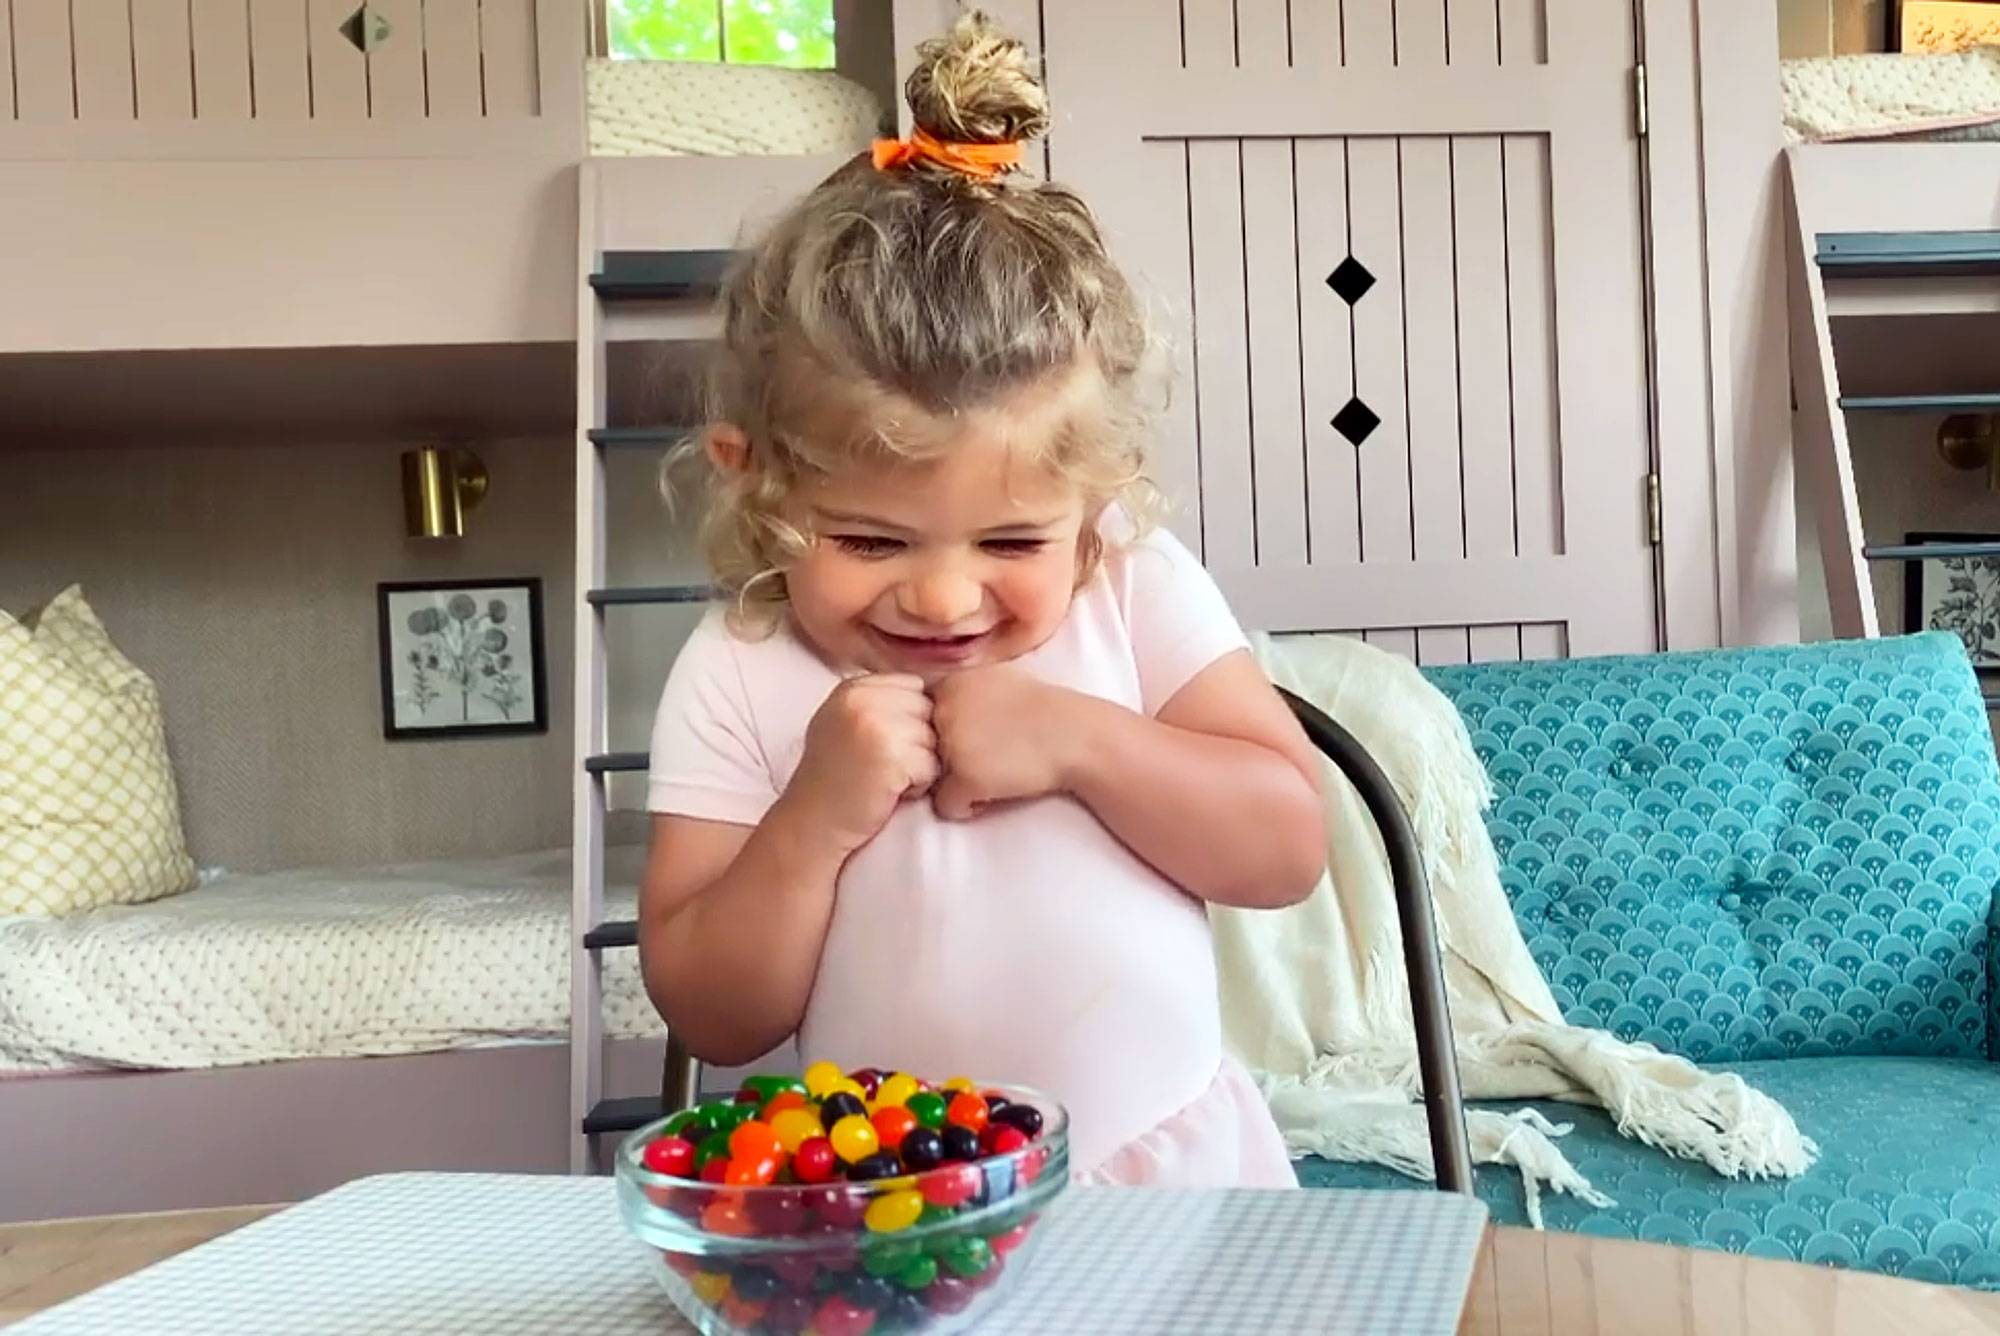 Thomas Rhett and Lauren Akins' Daughter Ada James Had an Adorable Response to the Candy Challenge